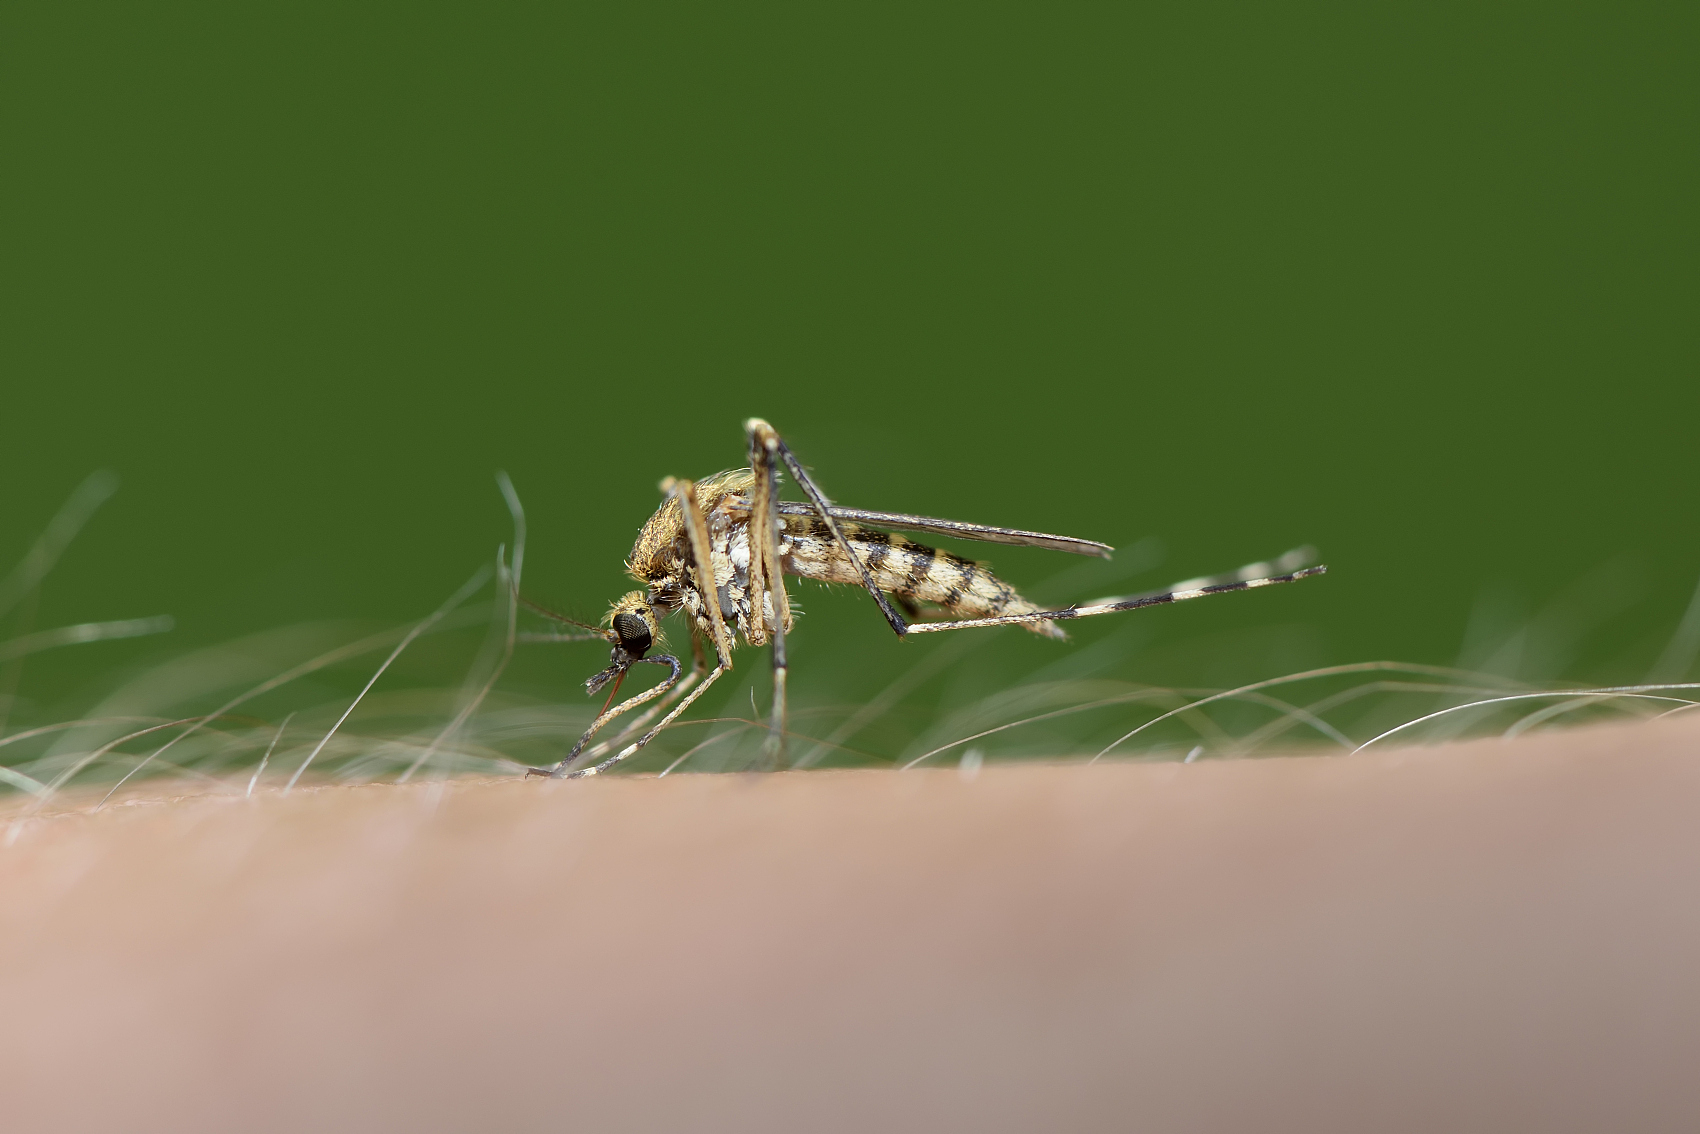 Mosquito alert! Are you using the correct method to protect yourself?